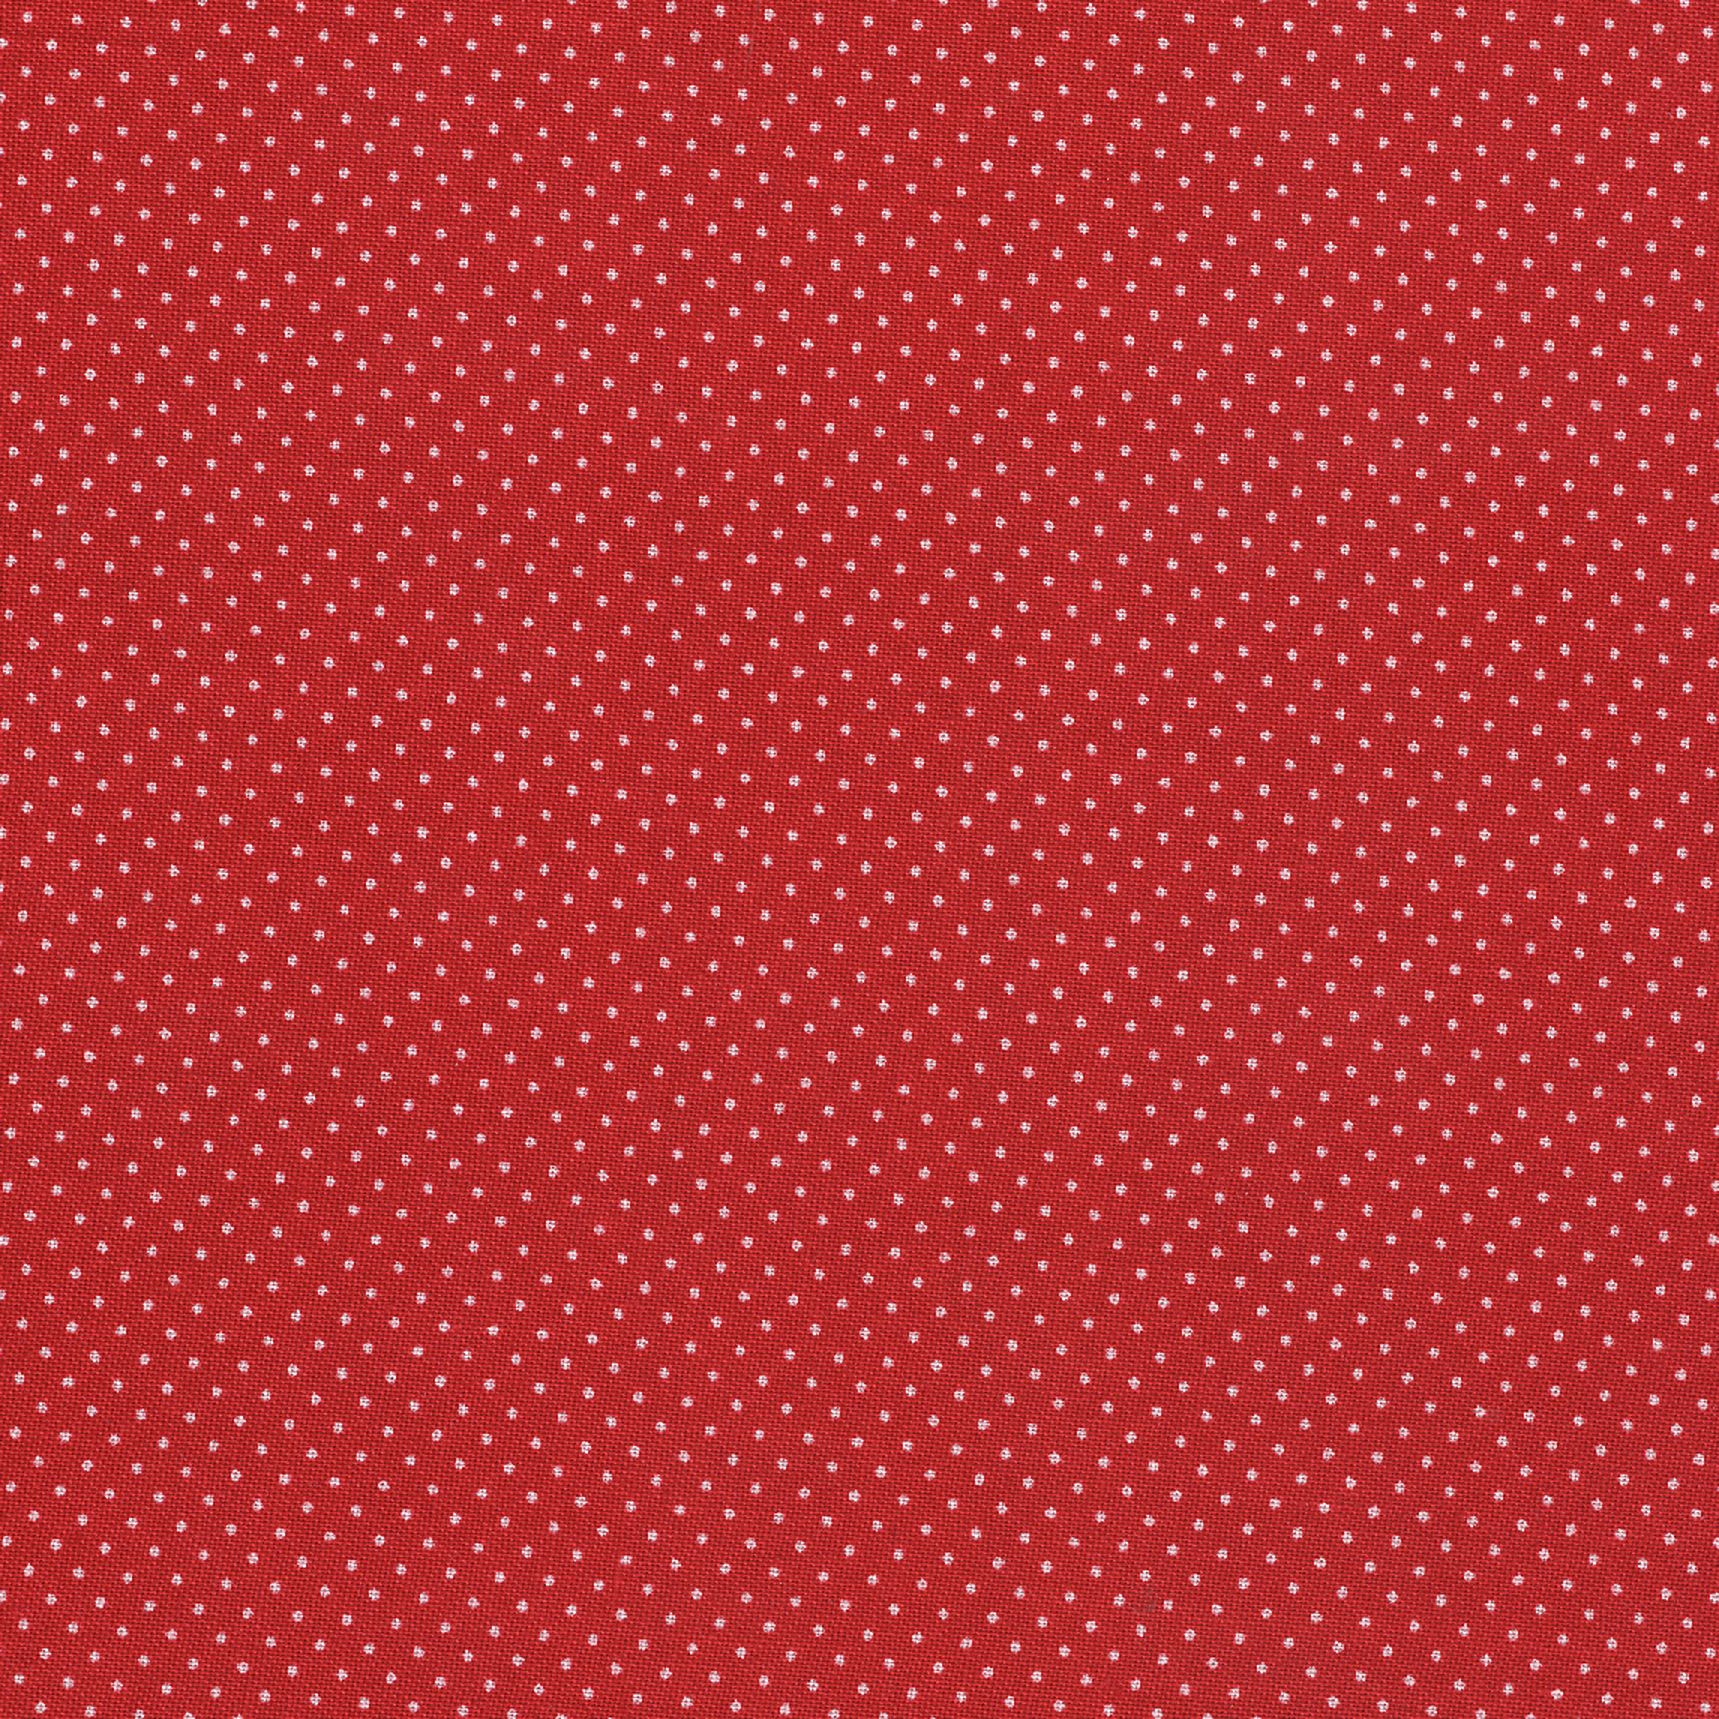 SHASON TEXTILE (3 Yards cut) 100% COTTON PRINT QUILTING FABRIC, RED / WHITE PINDOTS